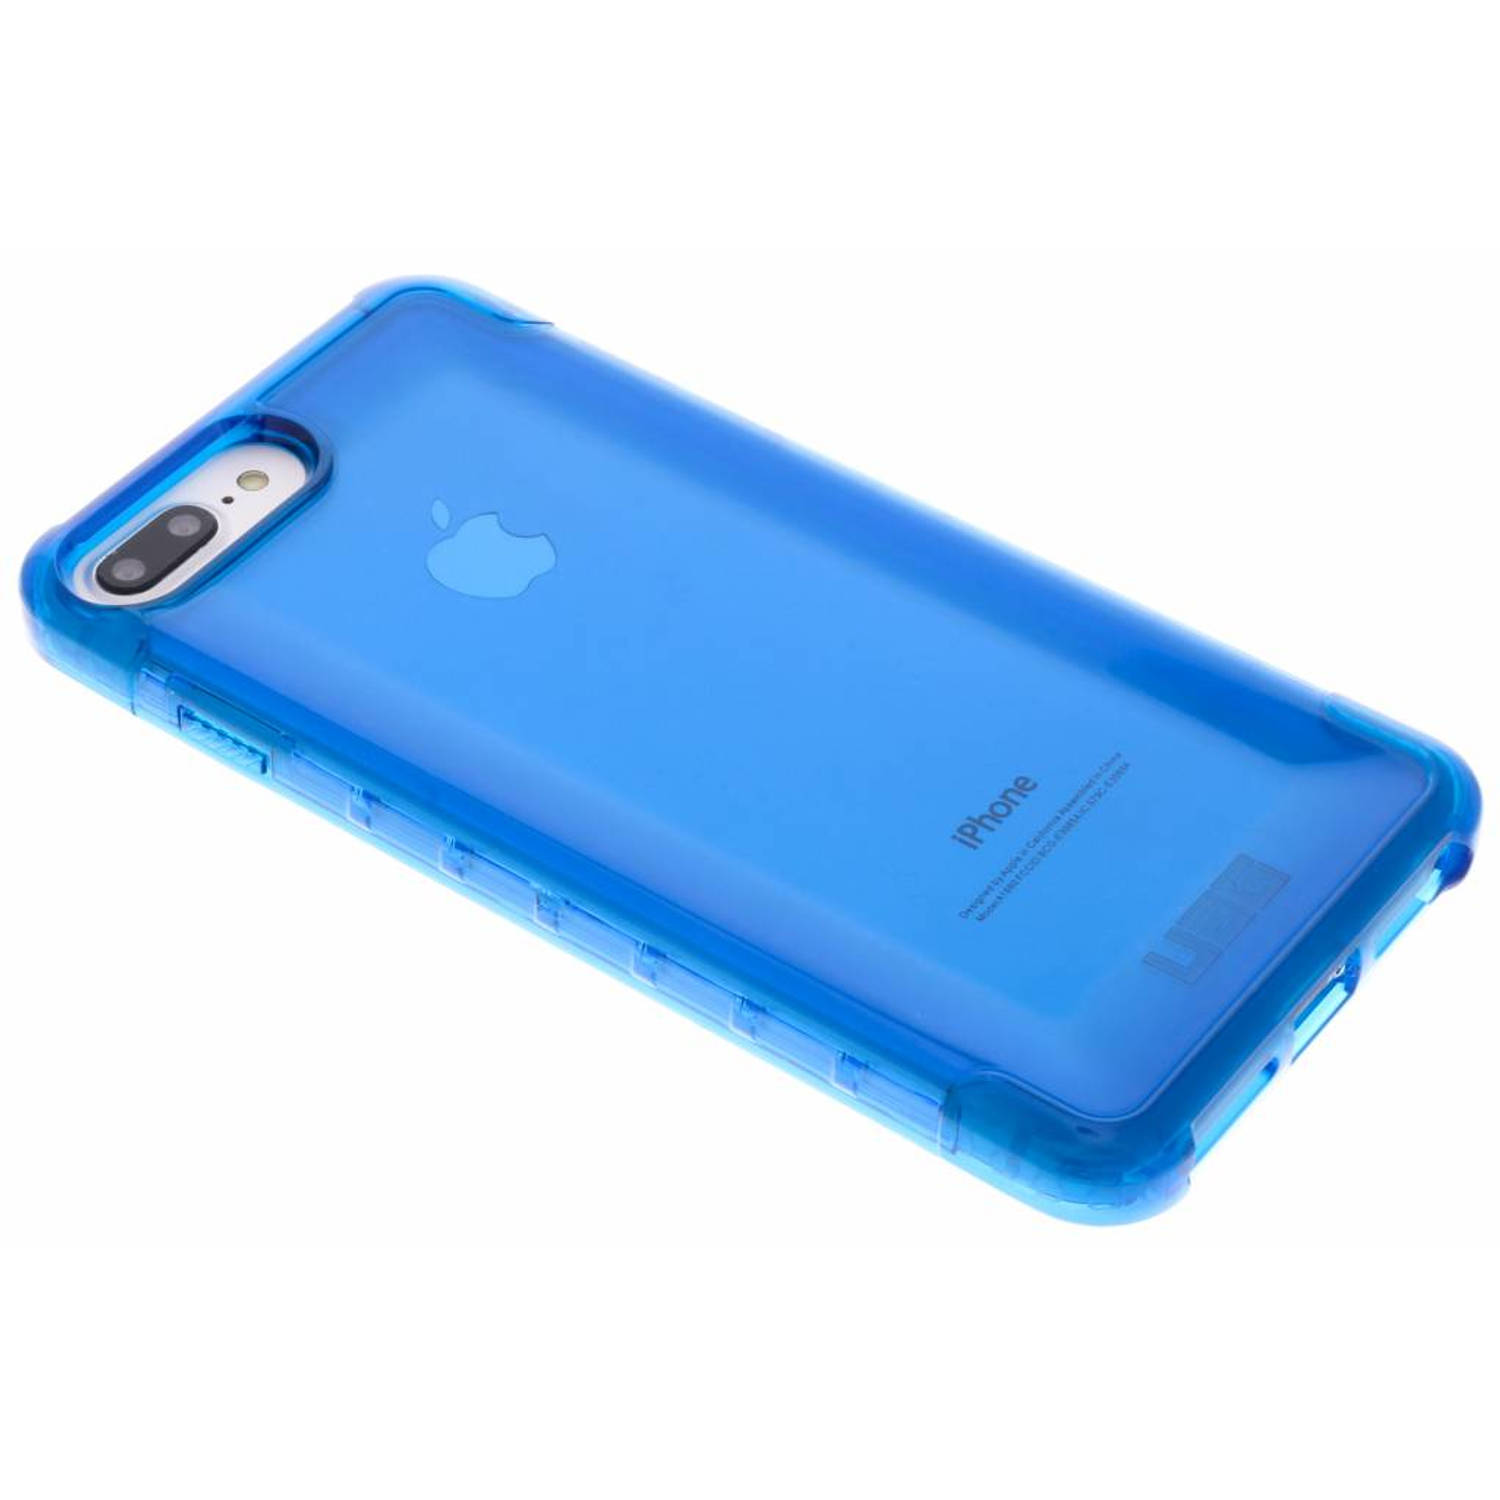 Blauwe Plyo Hard Case voor de iPhone 8 Plus / 7 Plus / 6(S) Plus